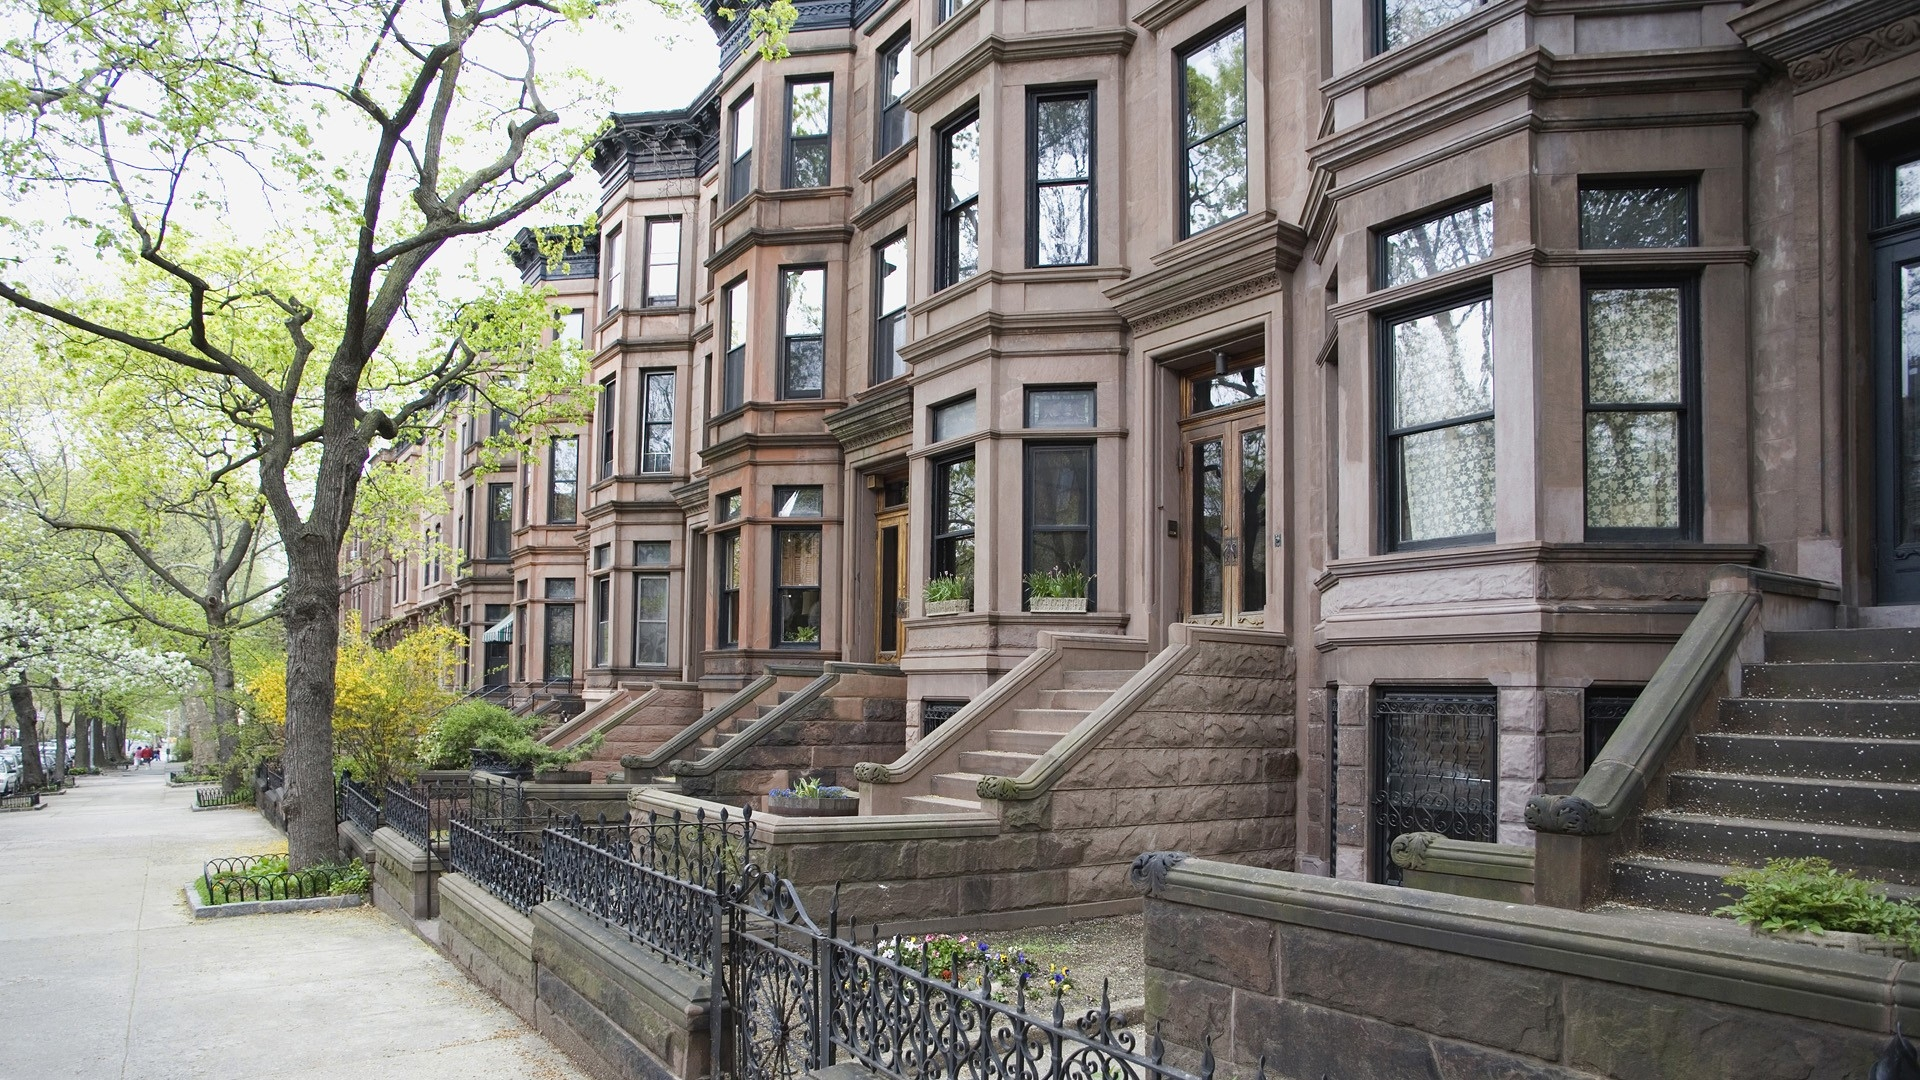 Download Wallpaper 1920x1080 New York Home Street Road Full Hd 1080p Hd Background